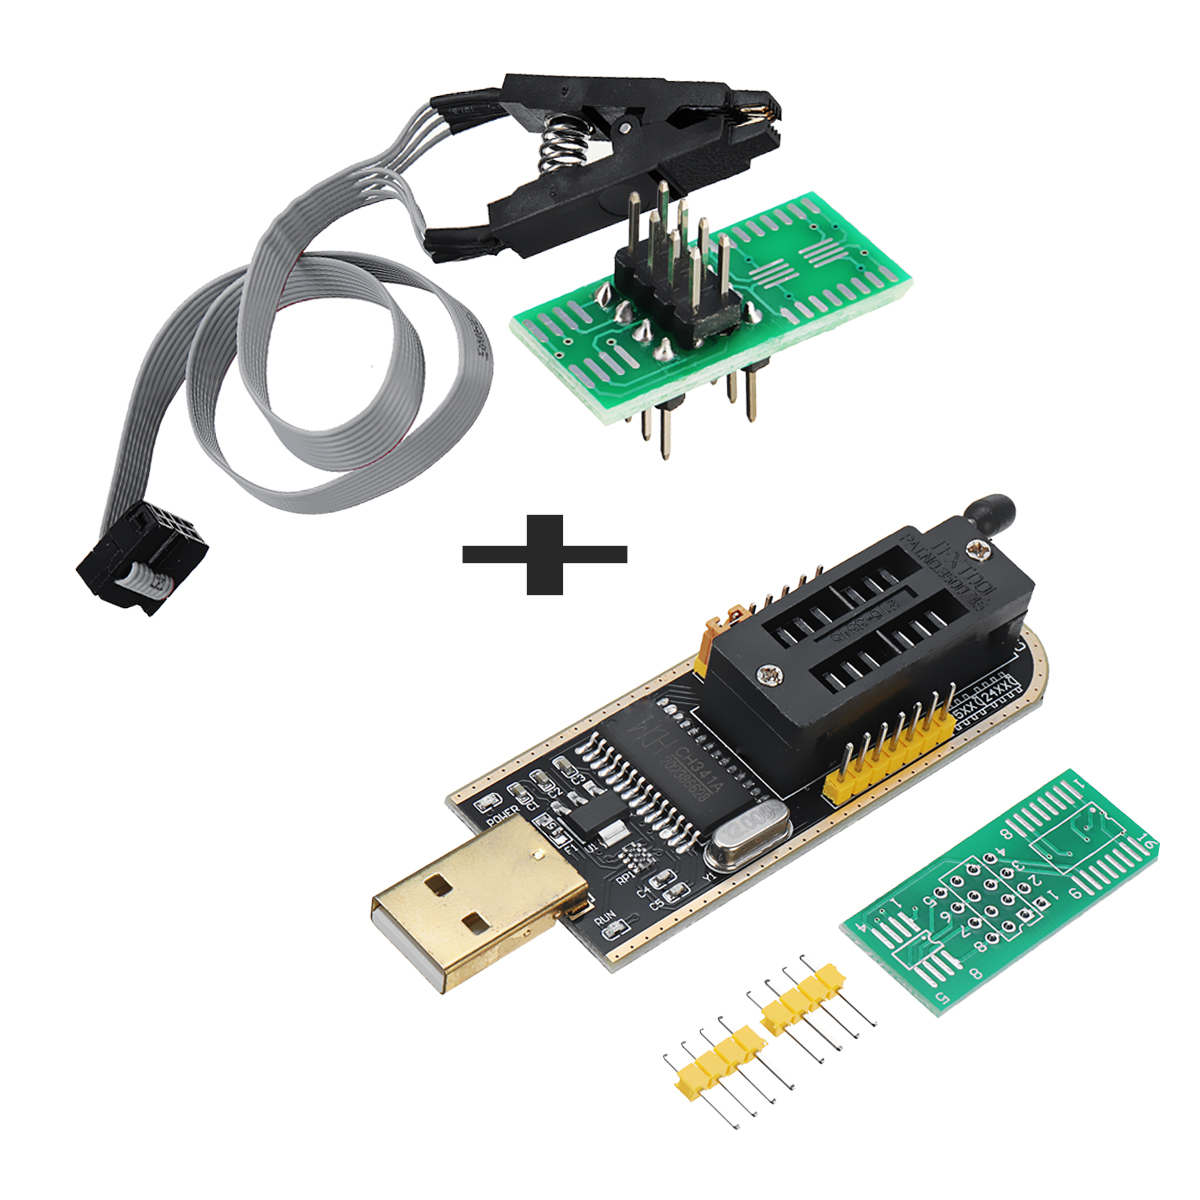 LCD Flash SOIC8 Adapter CH341A SOIC8 Clip EEPROM BIOS Writer USB Programmer